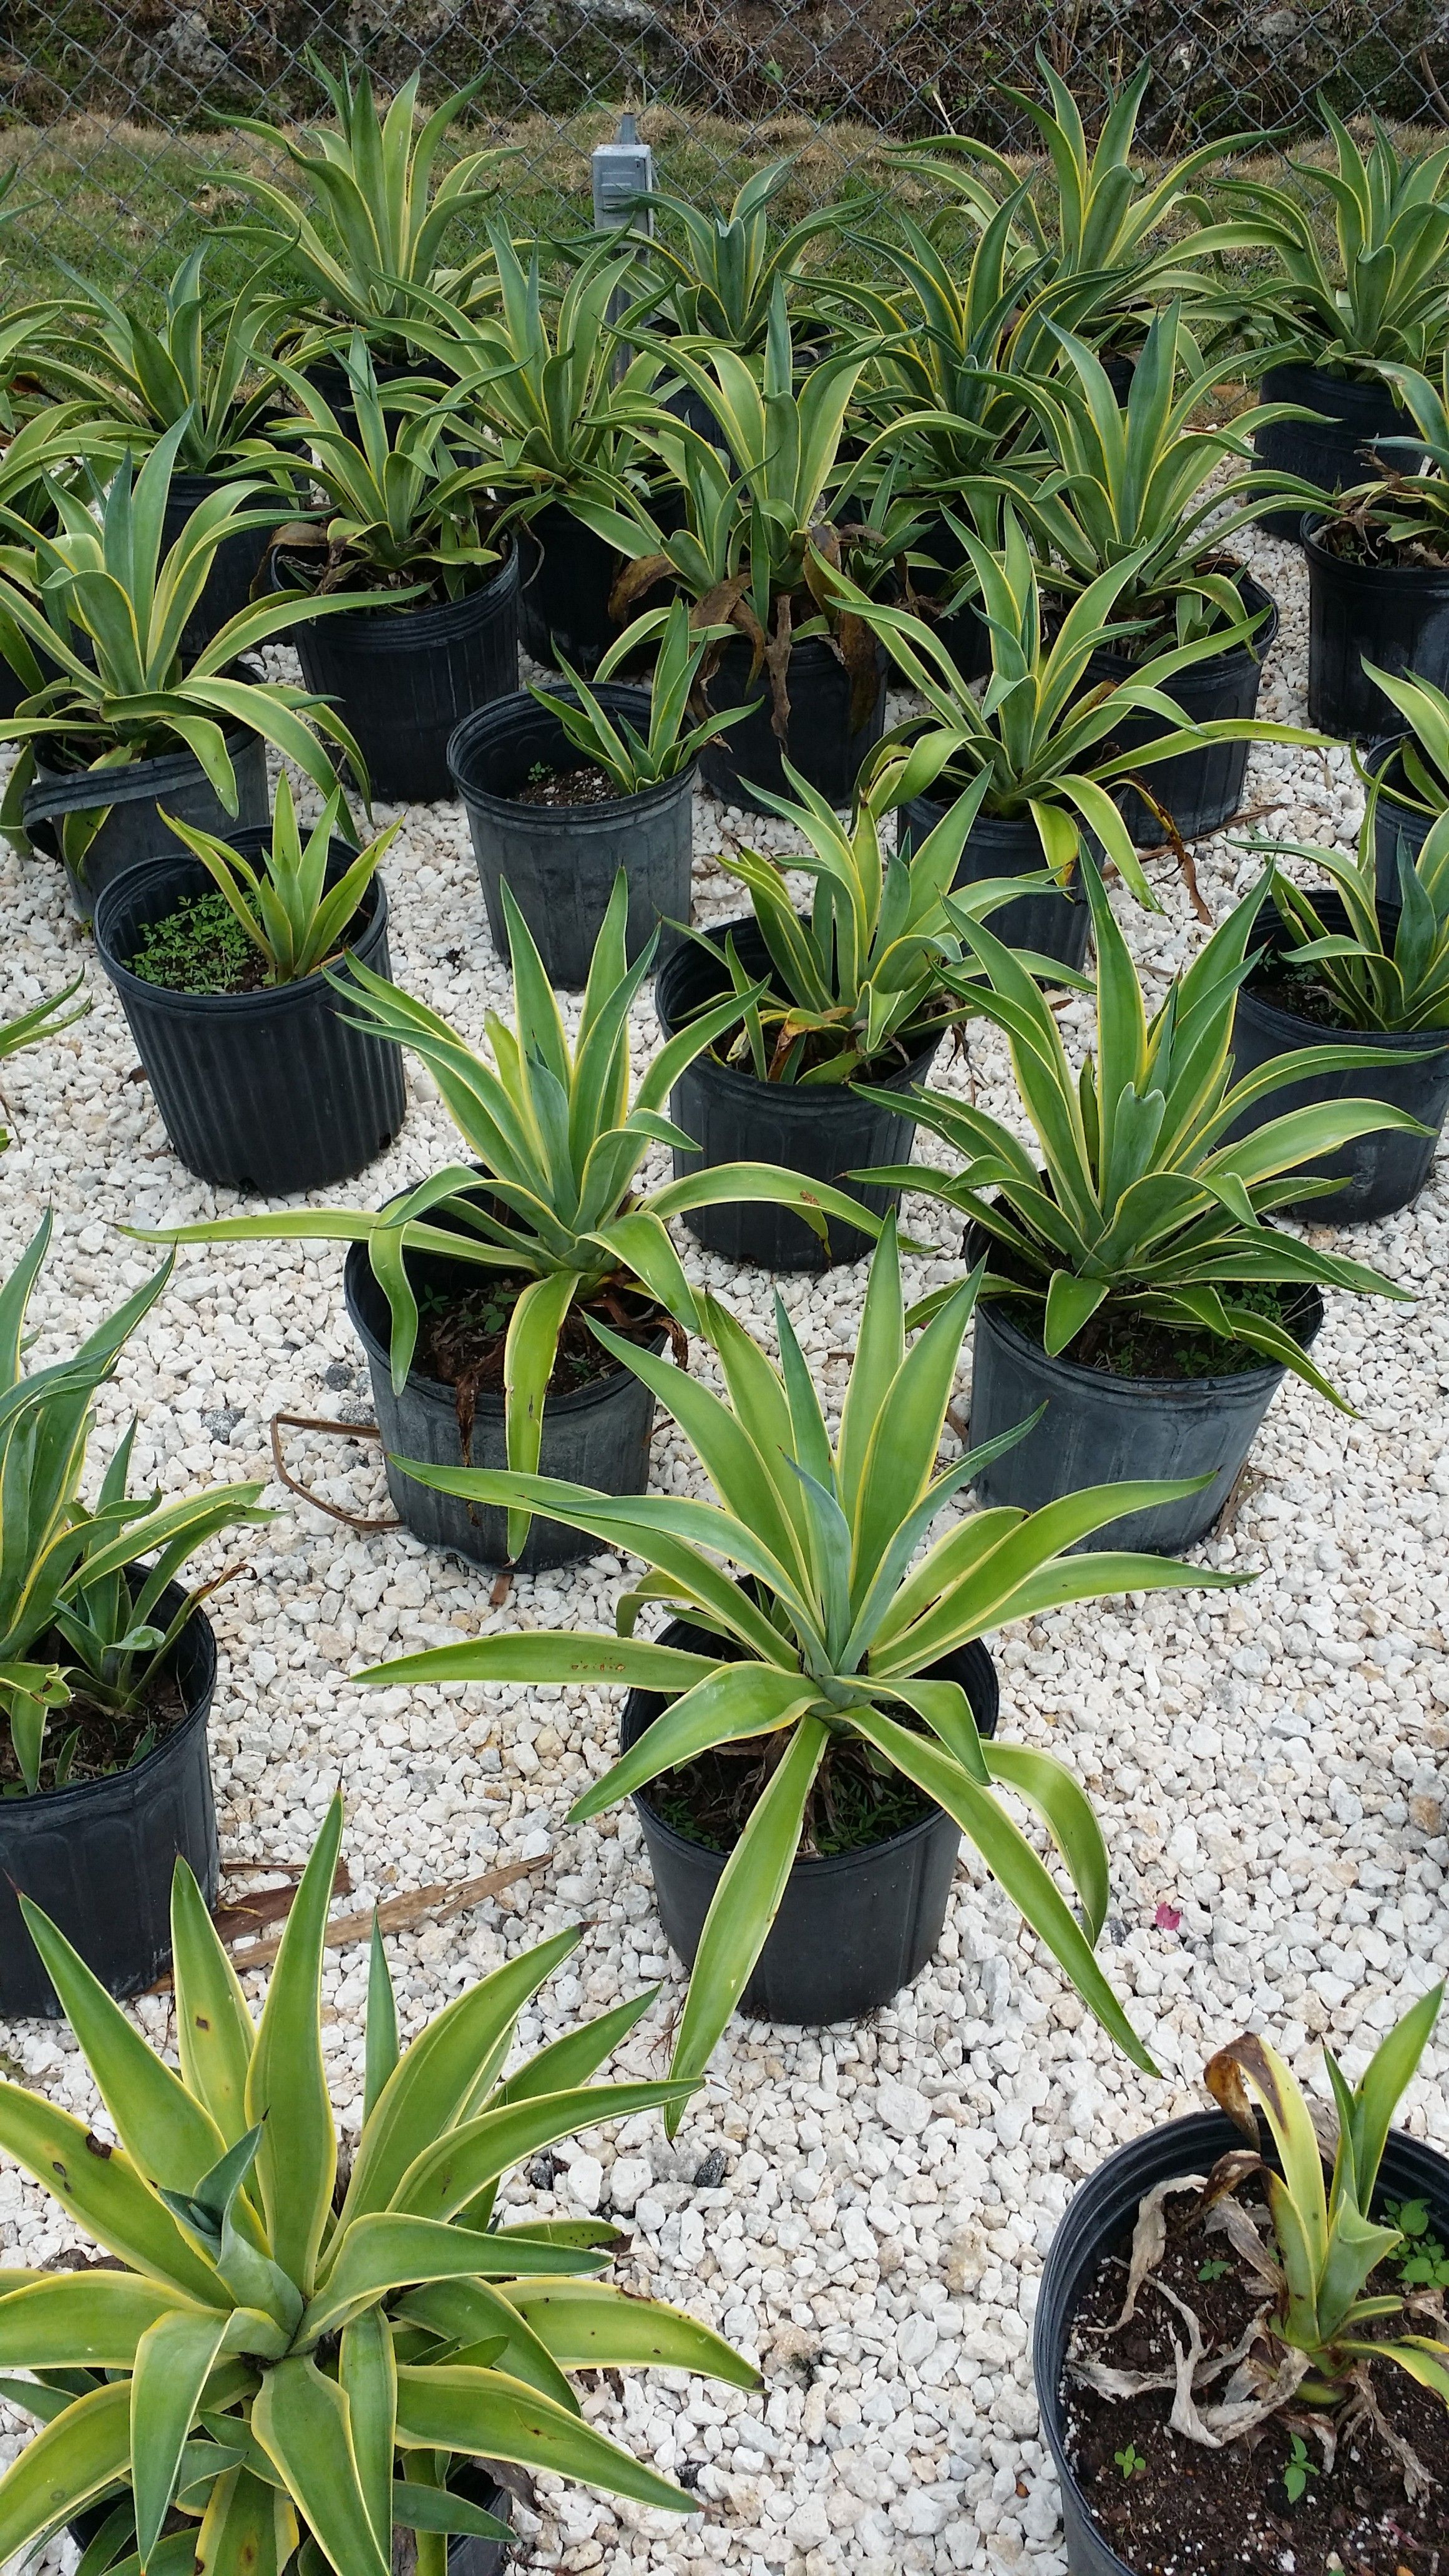 Homestead Whole Tree Nursery And Garden Center 3 Gallon Green Agave Plants